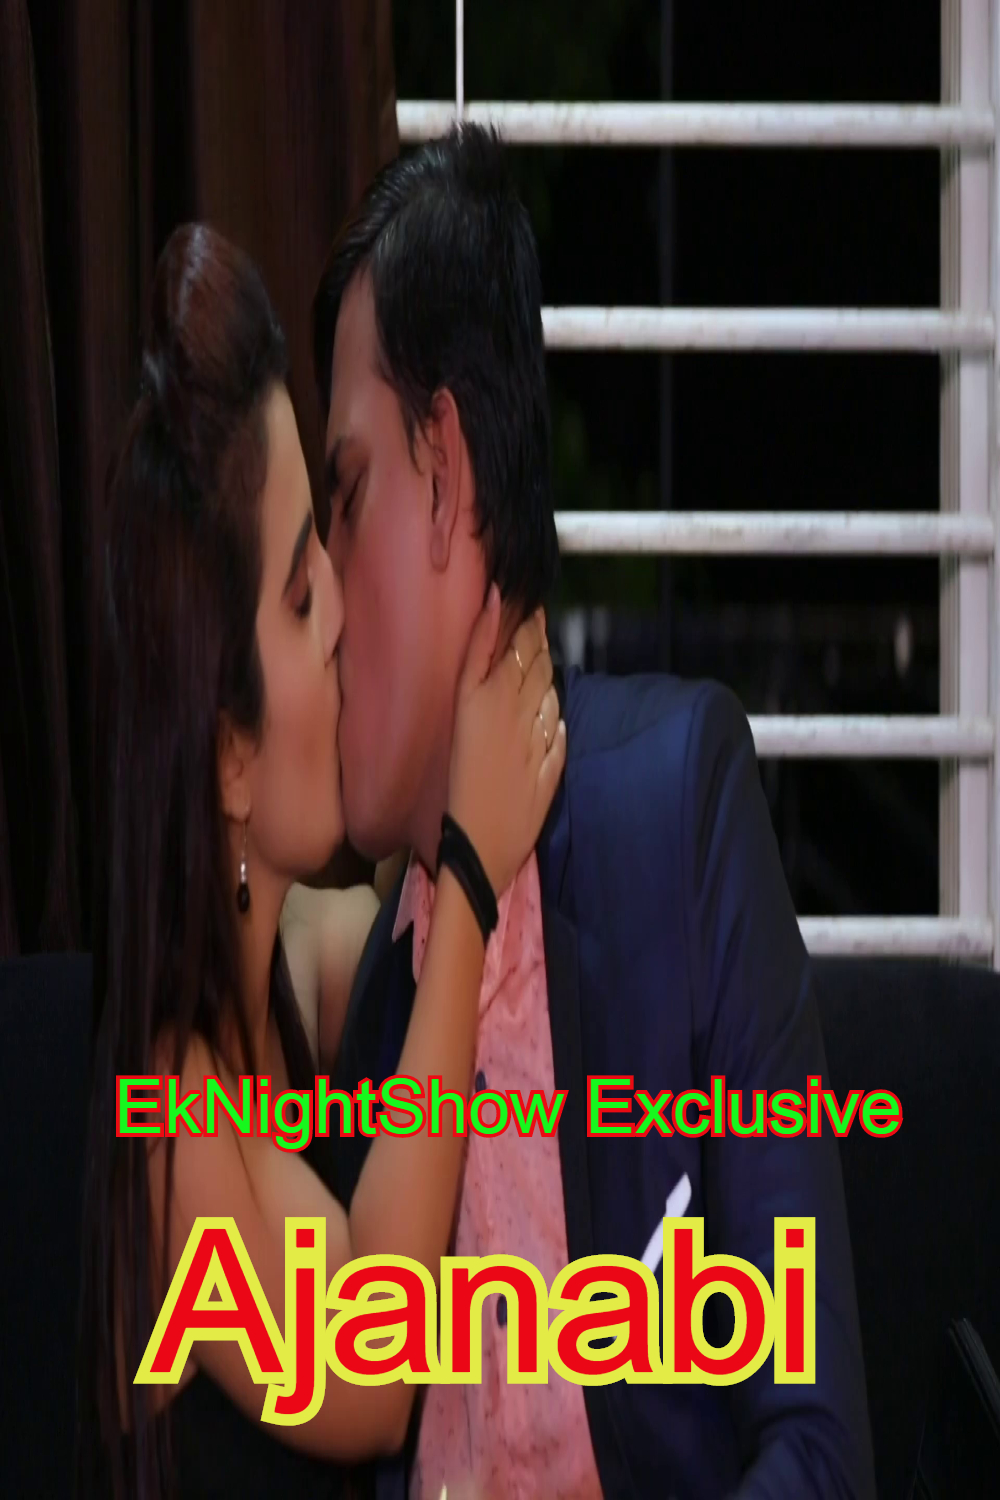 18+ Ajanabi 2020 EknightShow Originals Hindi Short Film 720p HDRip 200MB x264 AAC